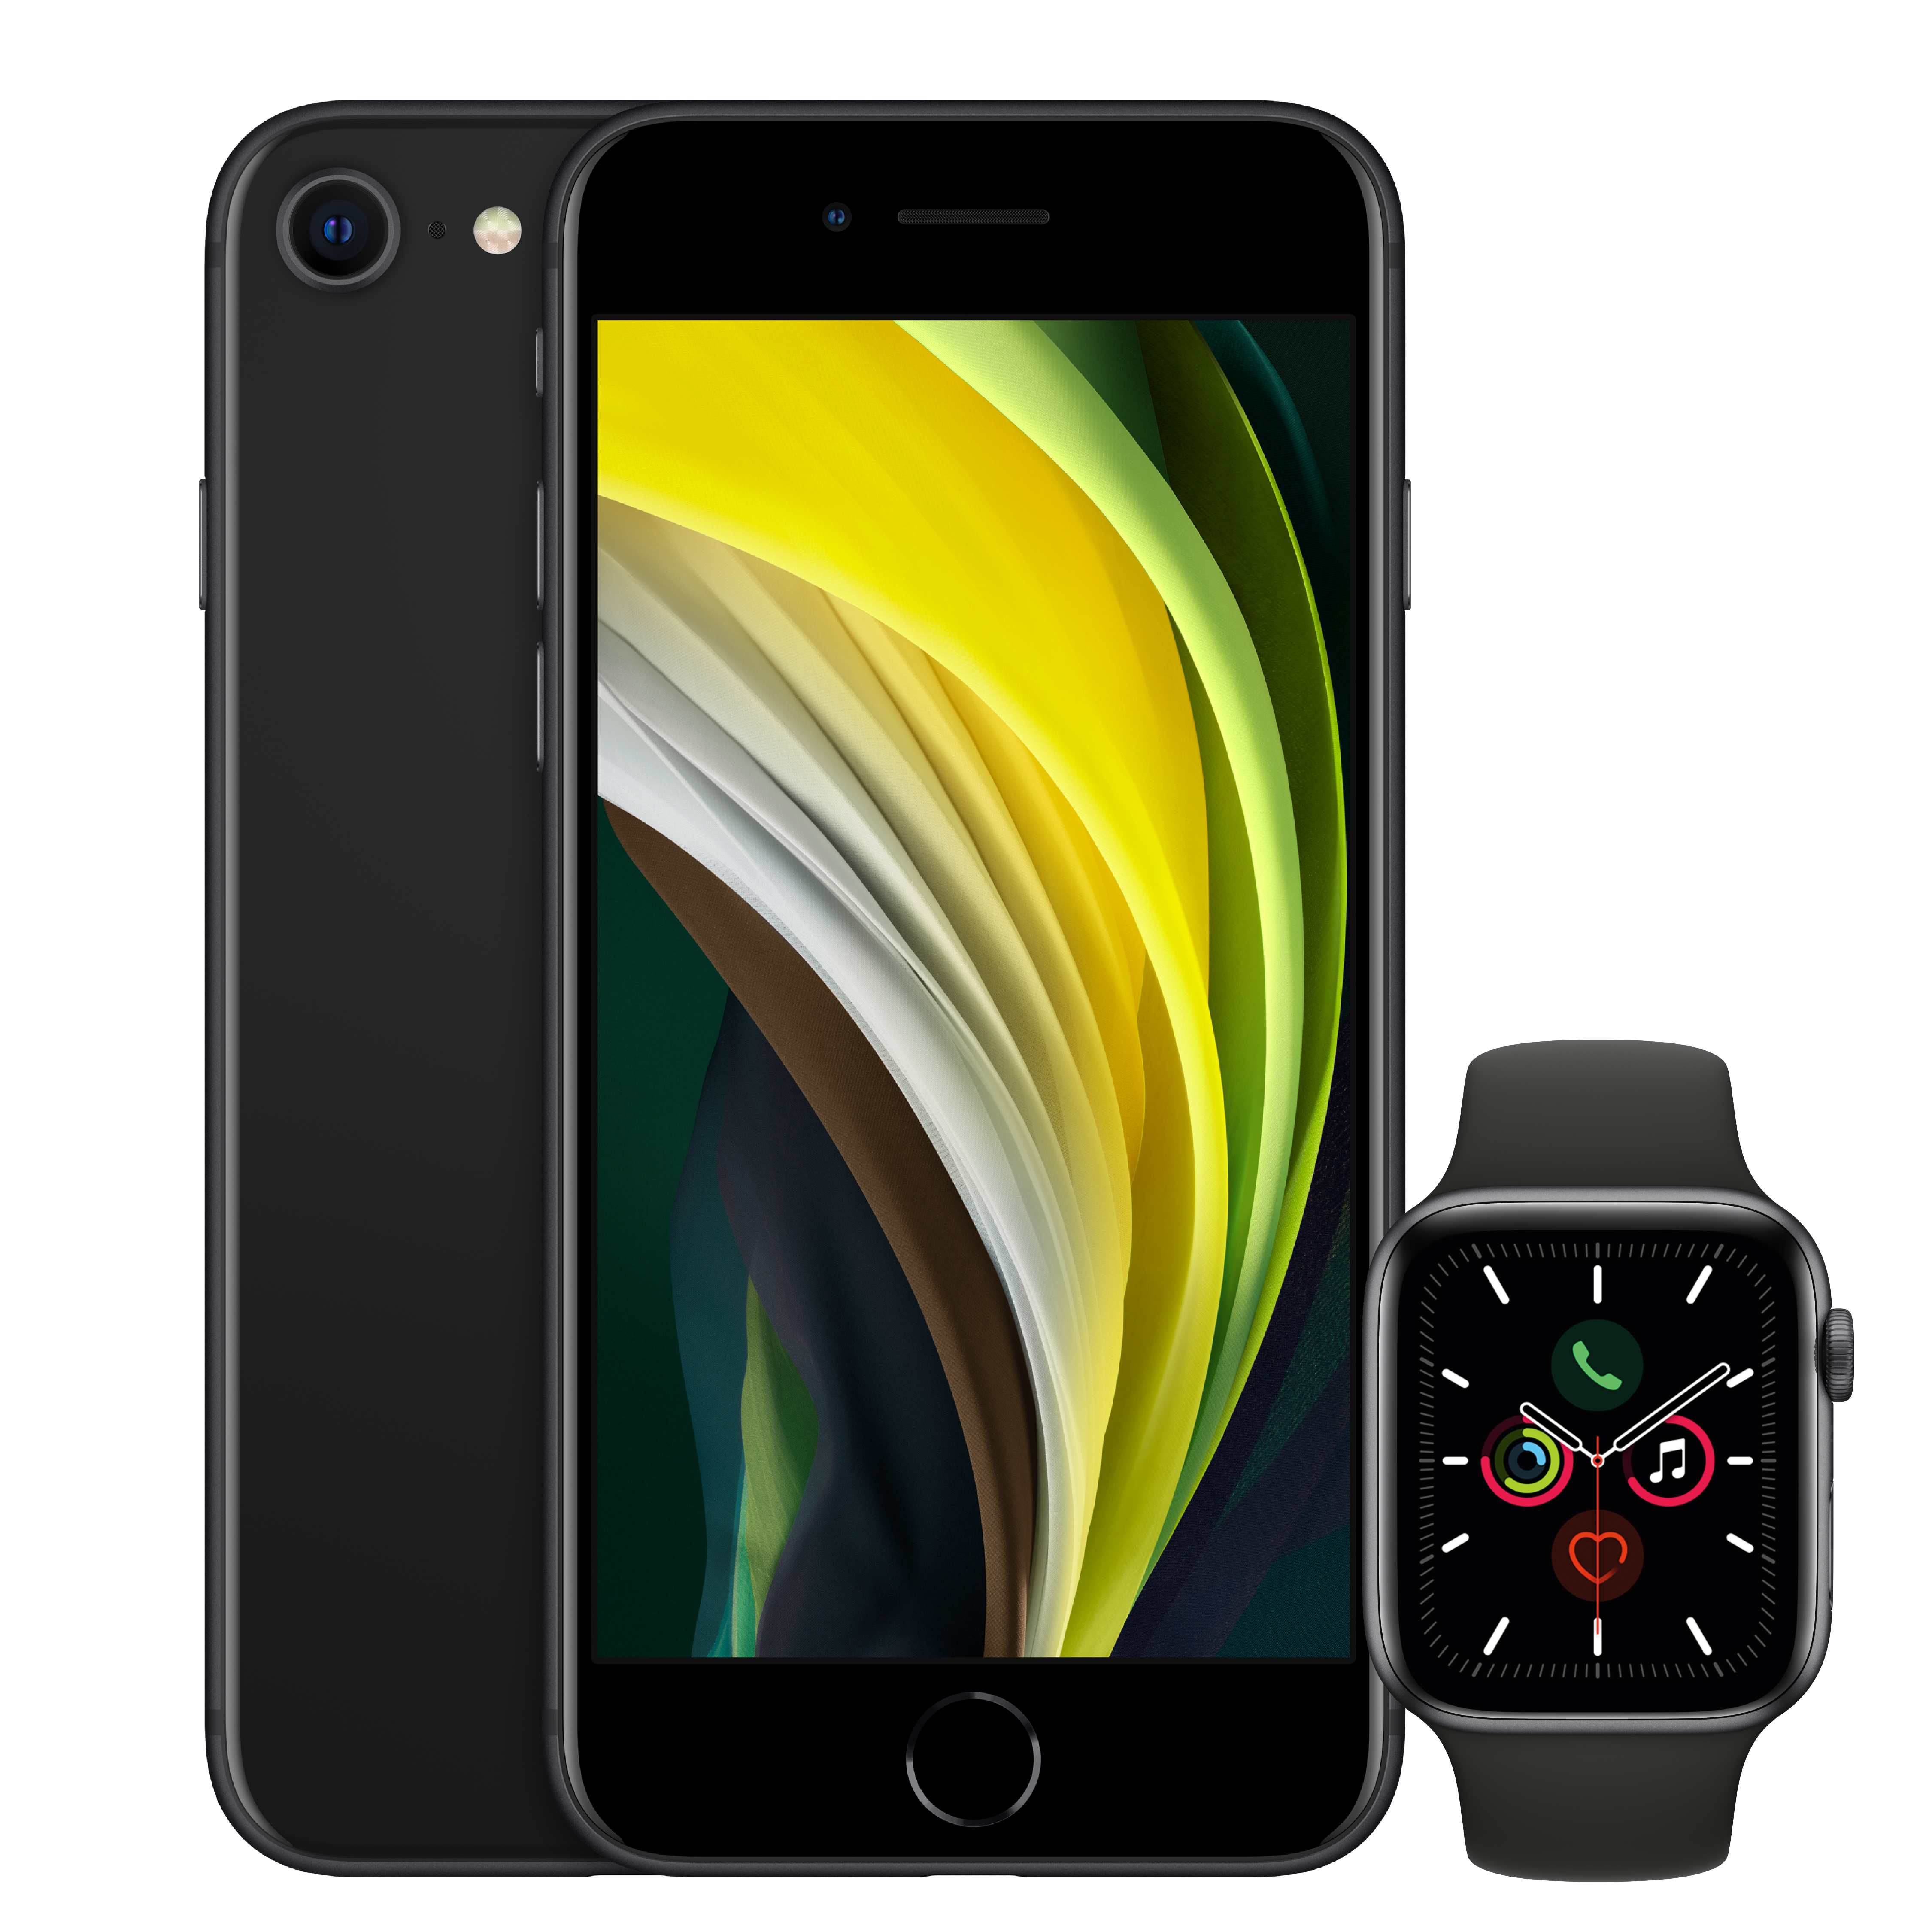 iPhone SE Space Gray and Apple Watch